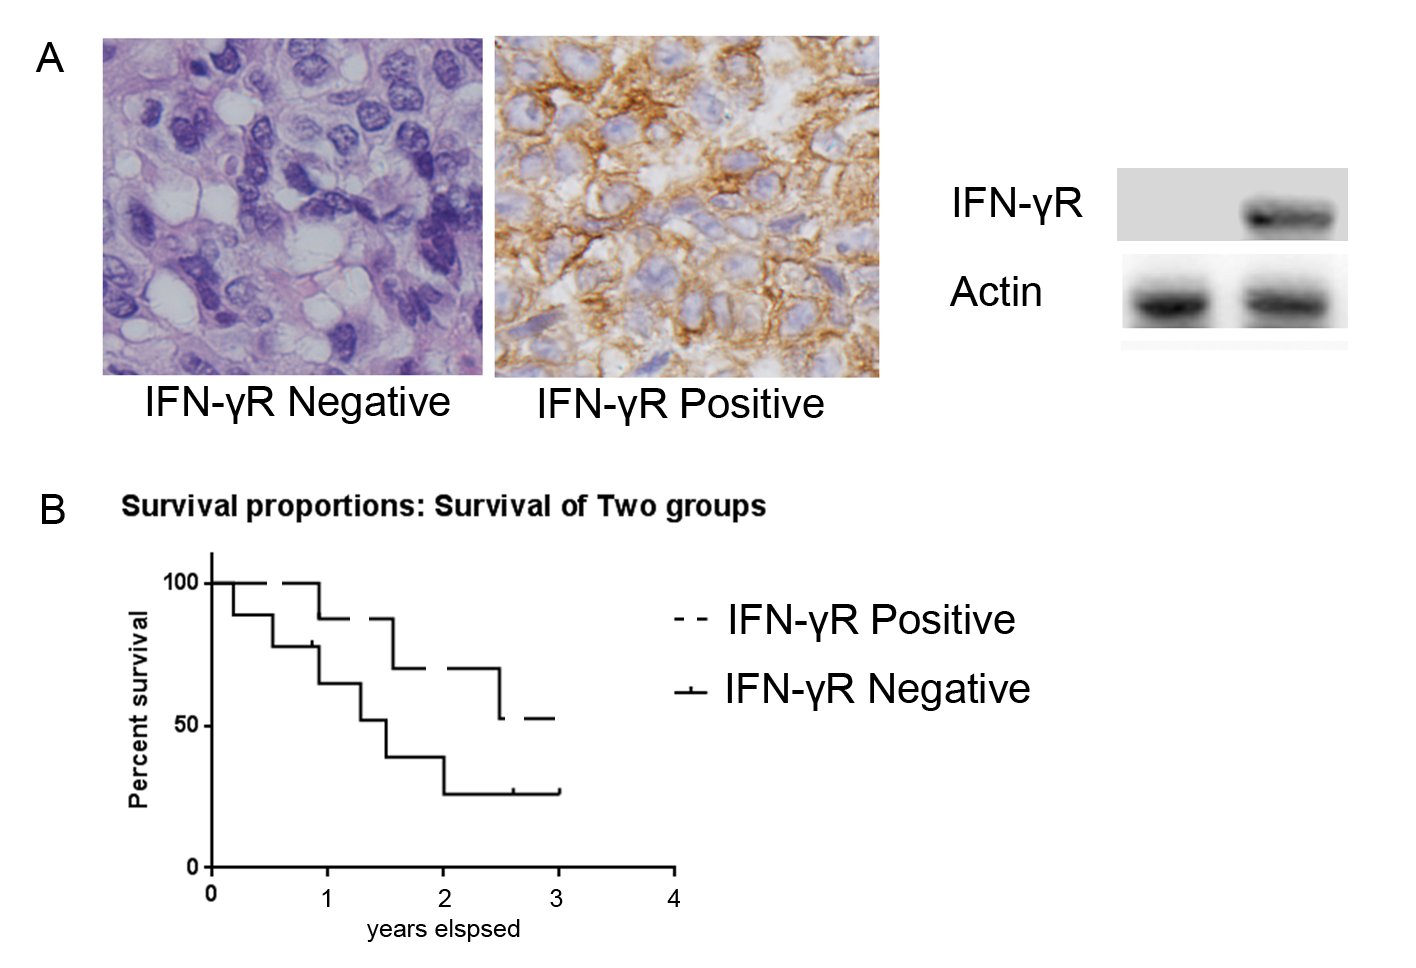 Figure 1. Representative IFN-γR immunostaining in NPC and effects of IFN-γR expression on patient's survival. A: IFN-γR expression is positive in some patients and negative positive in others. B: In the patients that received concurrent chemotherapy with radiation therapy (55 out of 70), the survival rate of patients with low IFN-γR expression was significantly higher than that of patients with high IFN-γR expression (p = 0.001).